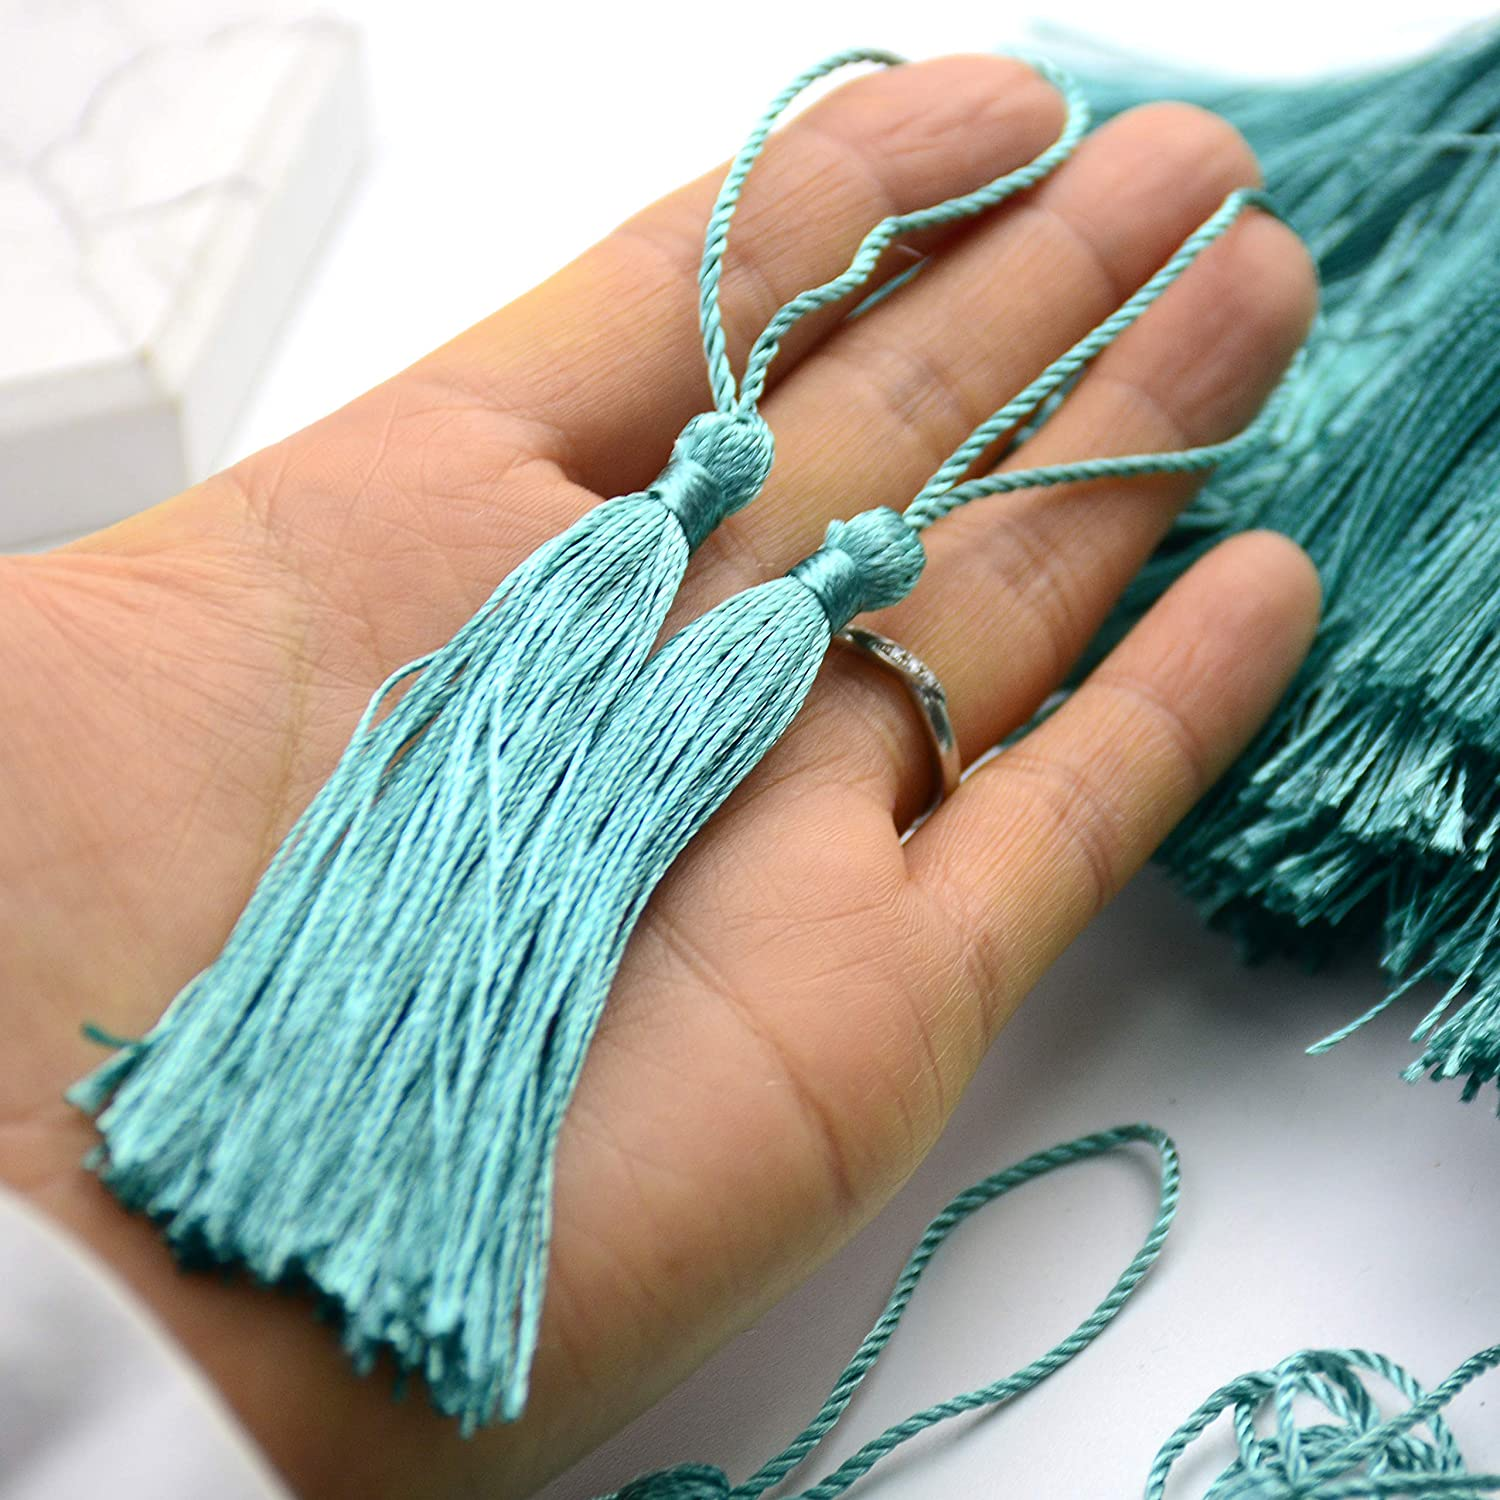 Bookmarks Souvenir Aokbean 100pcs 13cm//5 Inch Handmade Chinese Tassels Silky Floss Tassel with 2-Inch Cord Loop and Small Chinese Knot for Jewelry Making DIY Craft Accessory #18